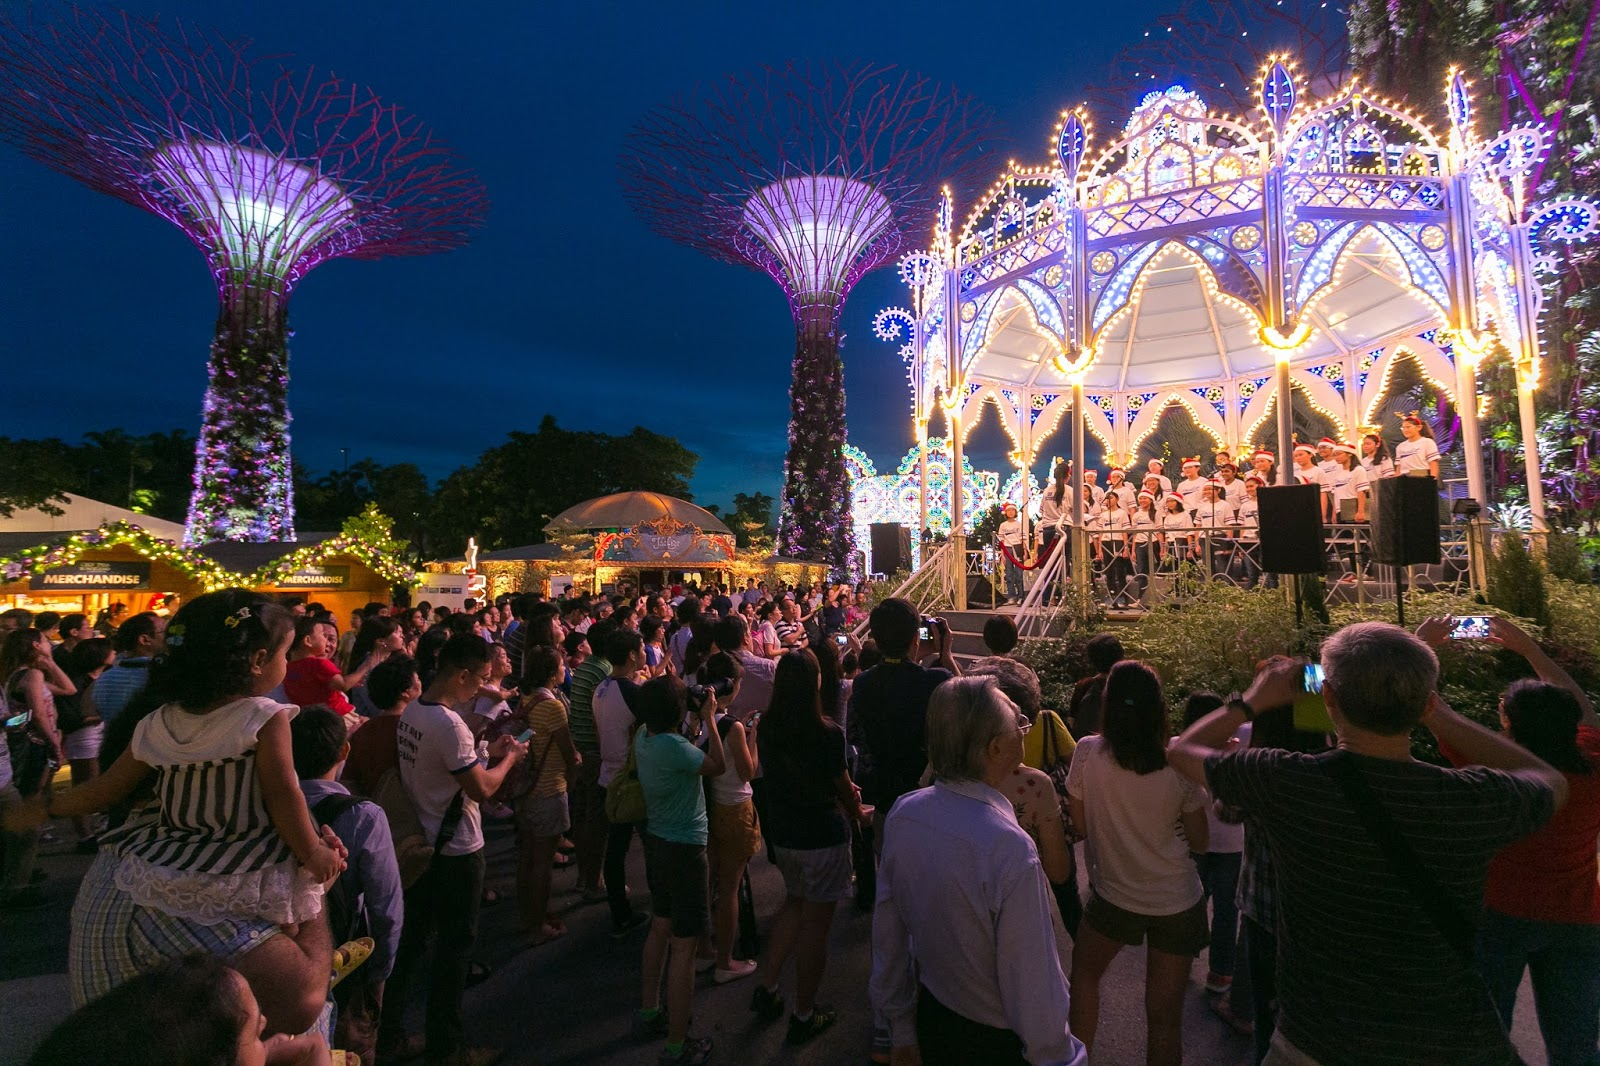 riding high on a successful inaugural year in 2014 this years christmas wonderland gardens by the bay will be nearly doubled in size at 35000 square